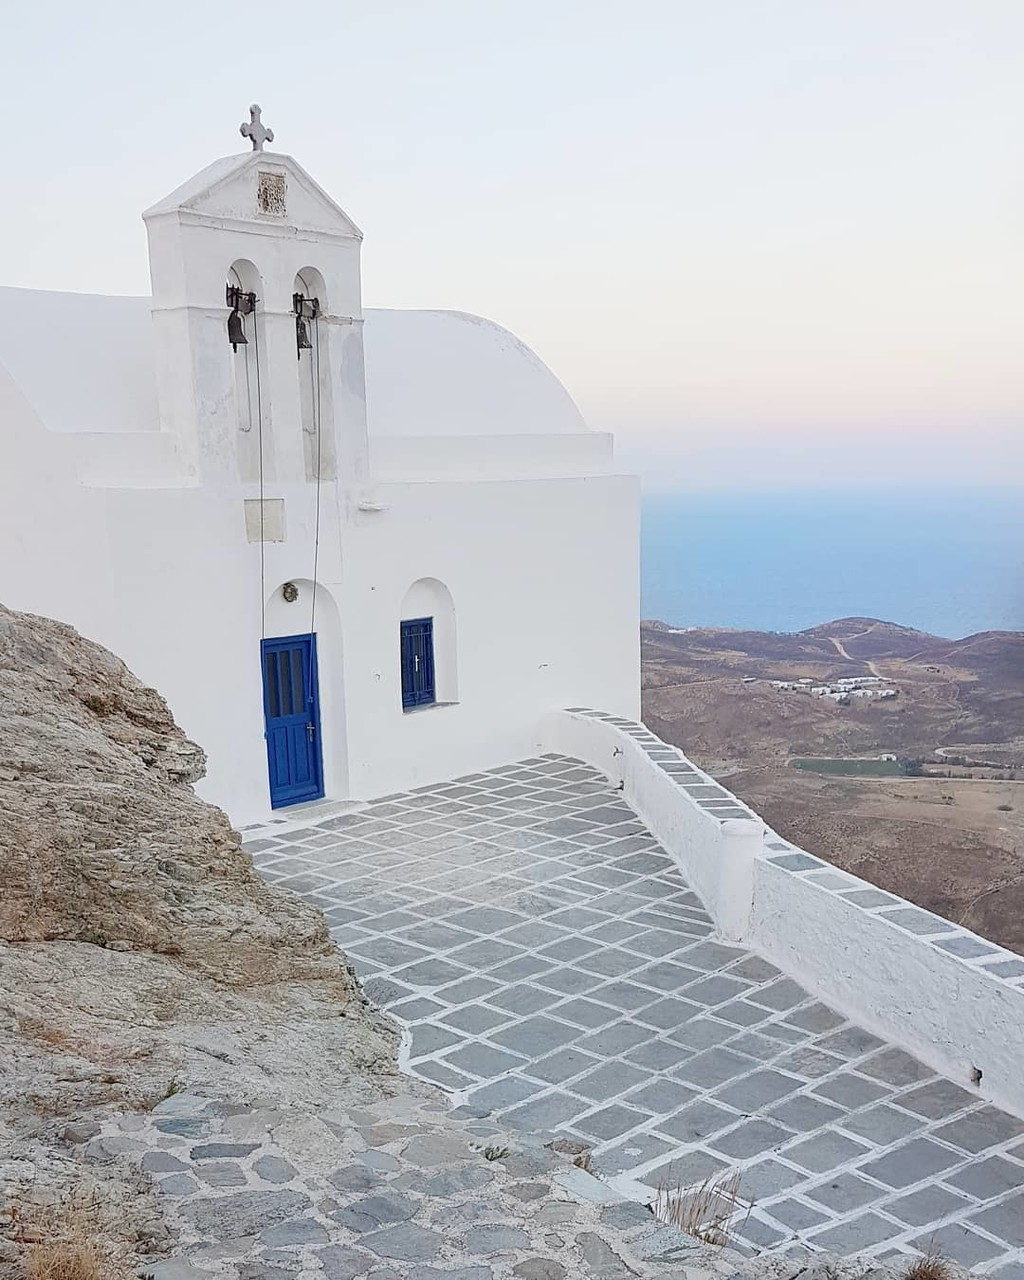 ▪Blue sky, white church! Isn't this the perfect combination for your destination